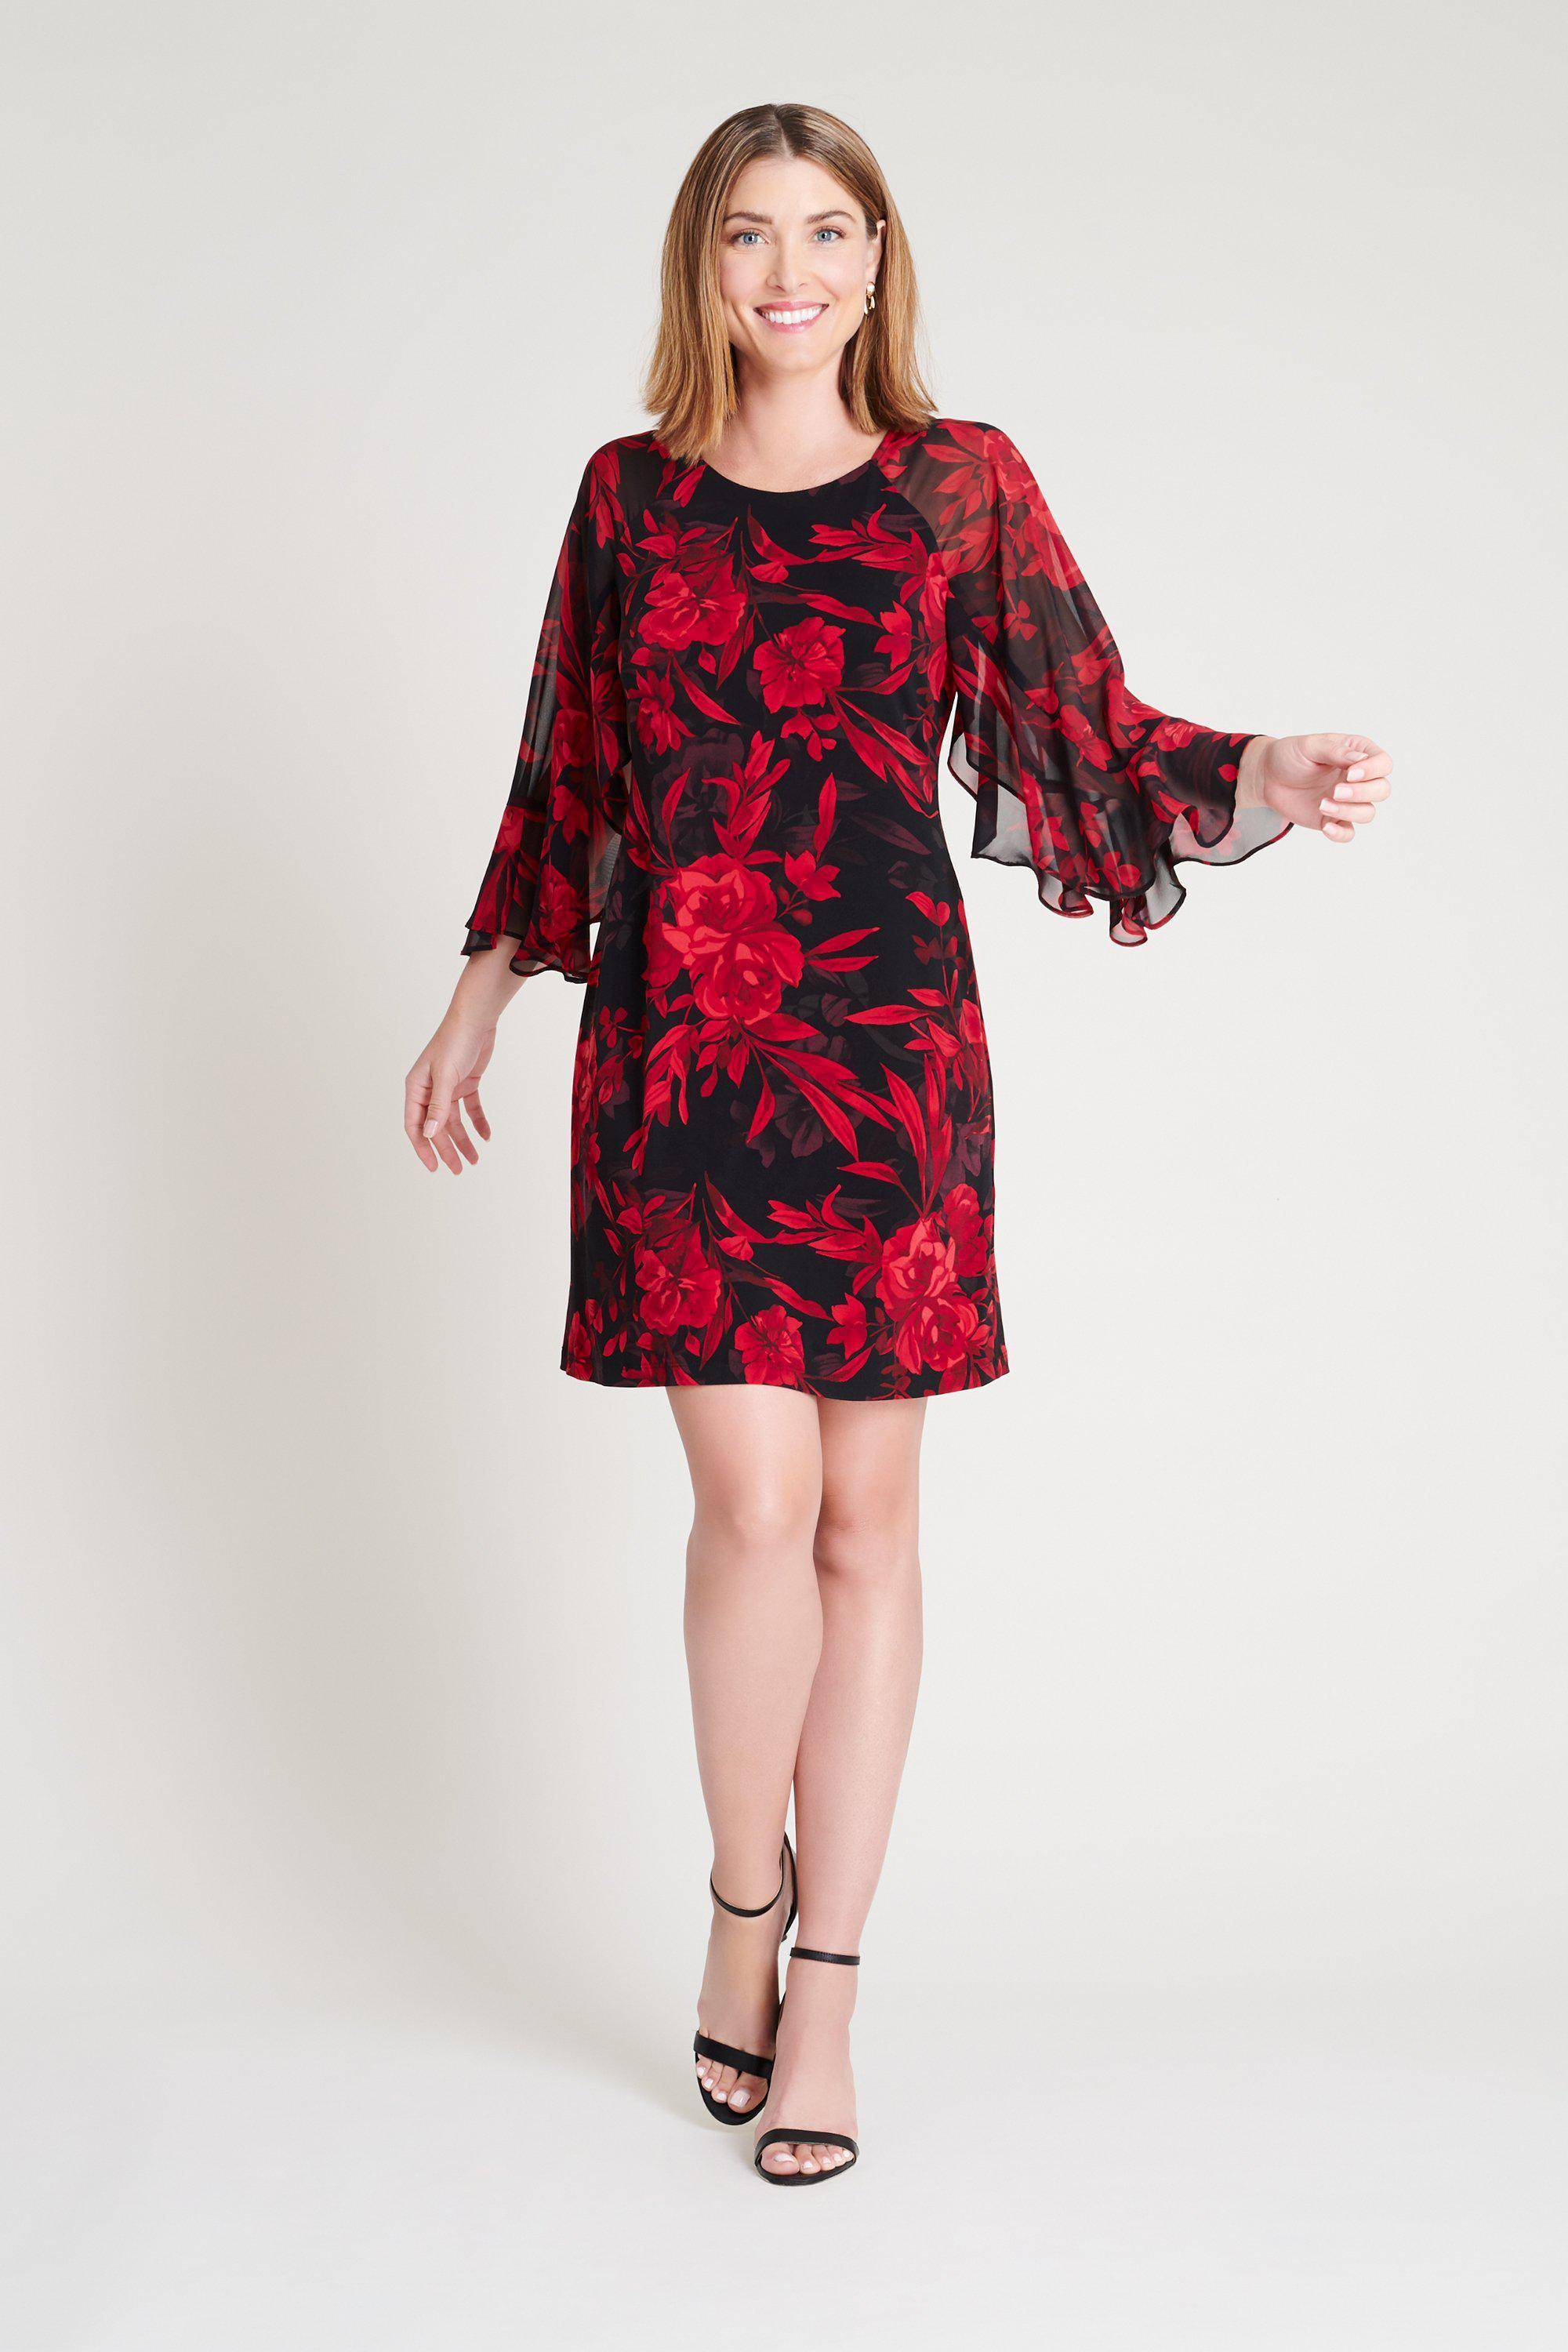 young short haired blonde woman in chiffon raglan sleeve short red and black floral connected apparel dress